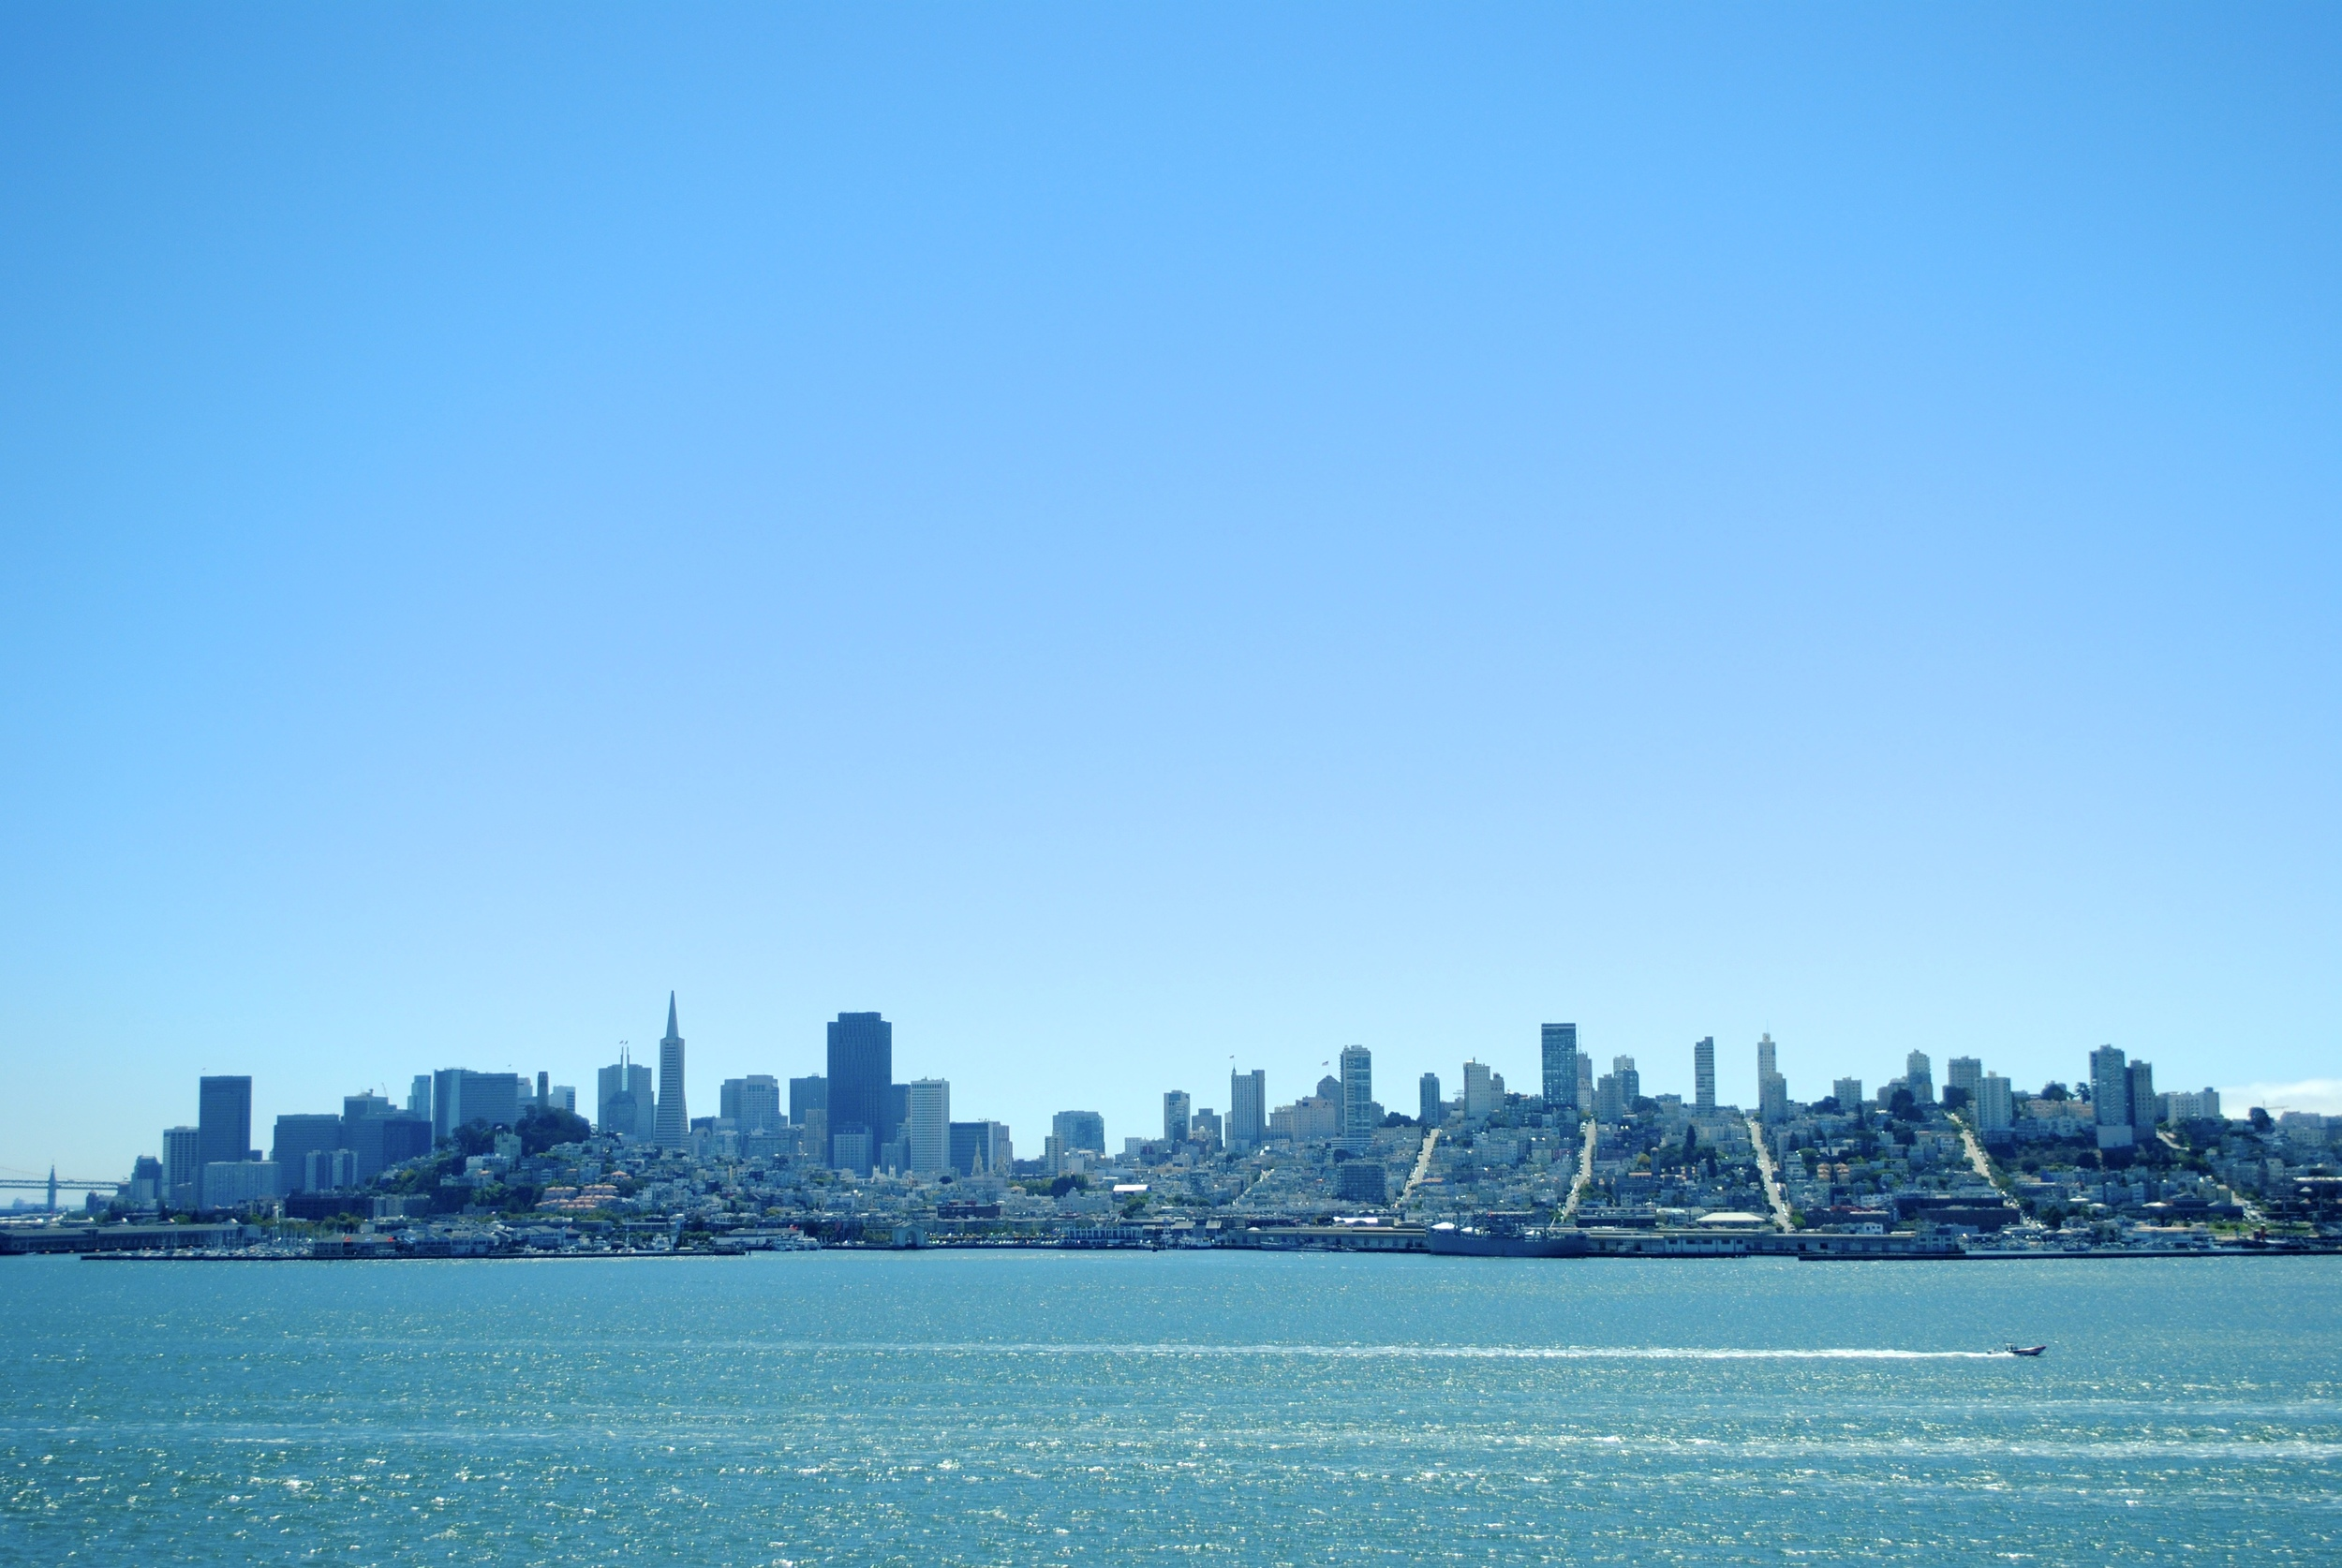 View of San Francisco on the way to Alcatraz.